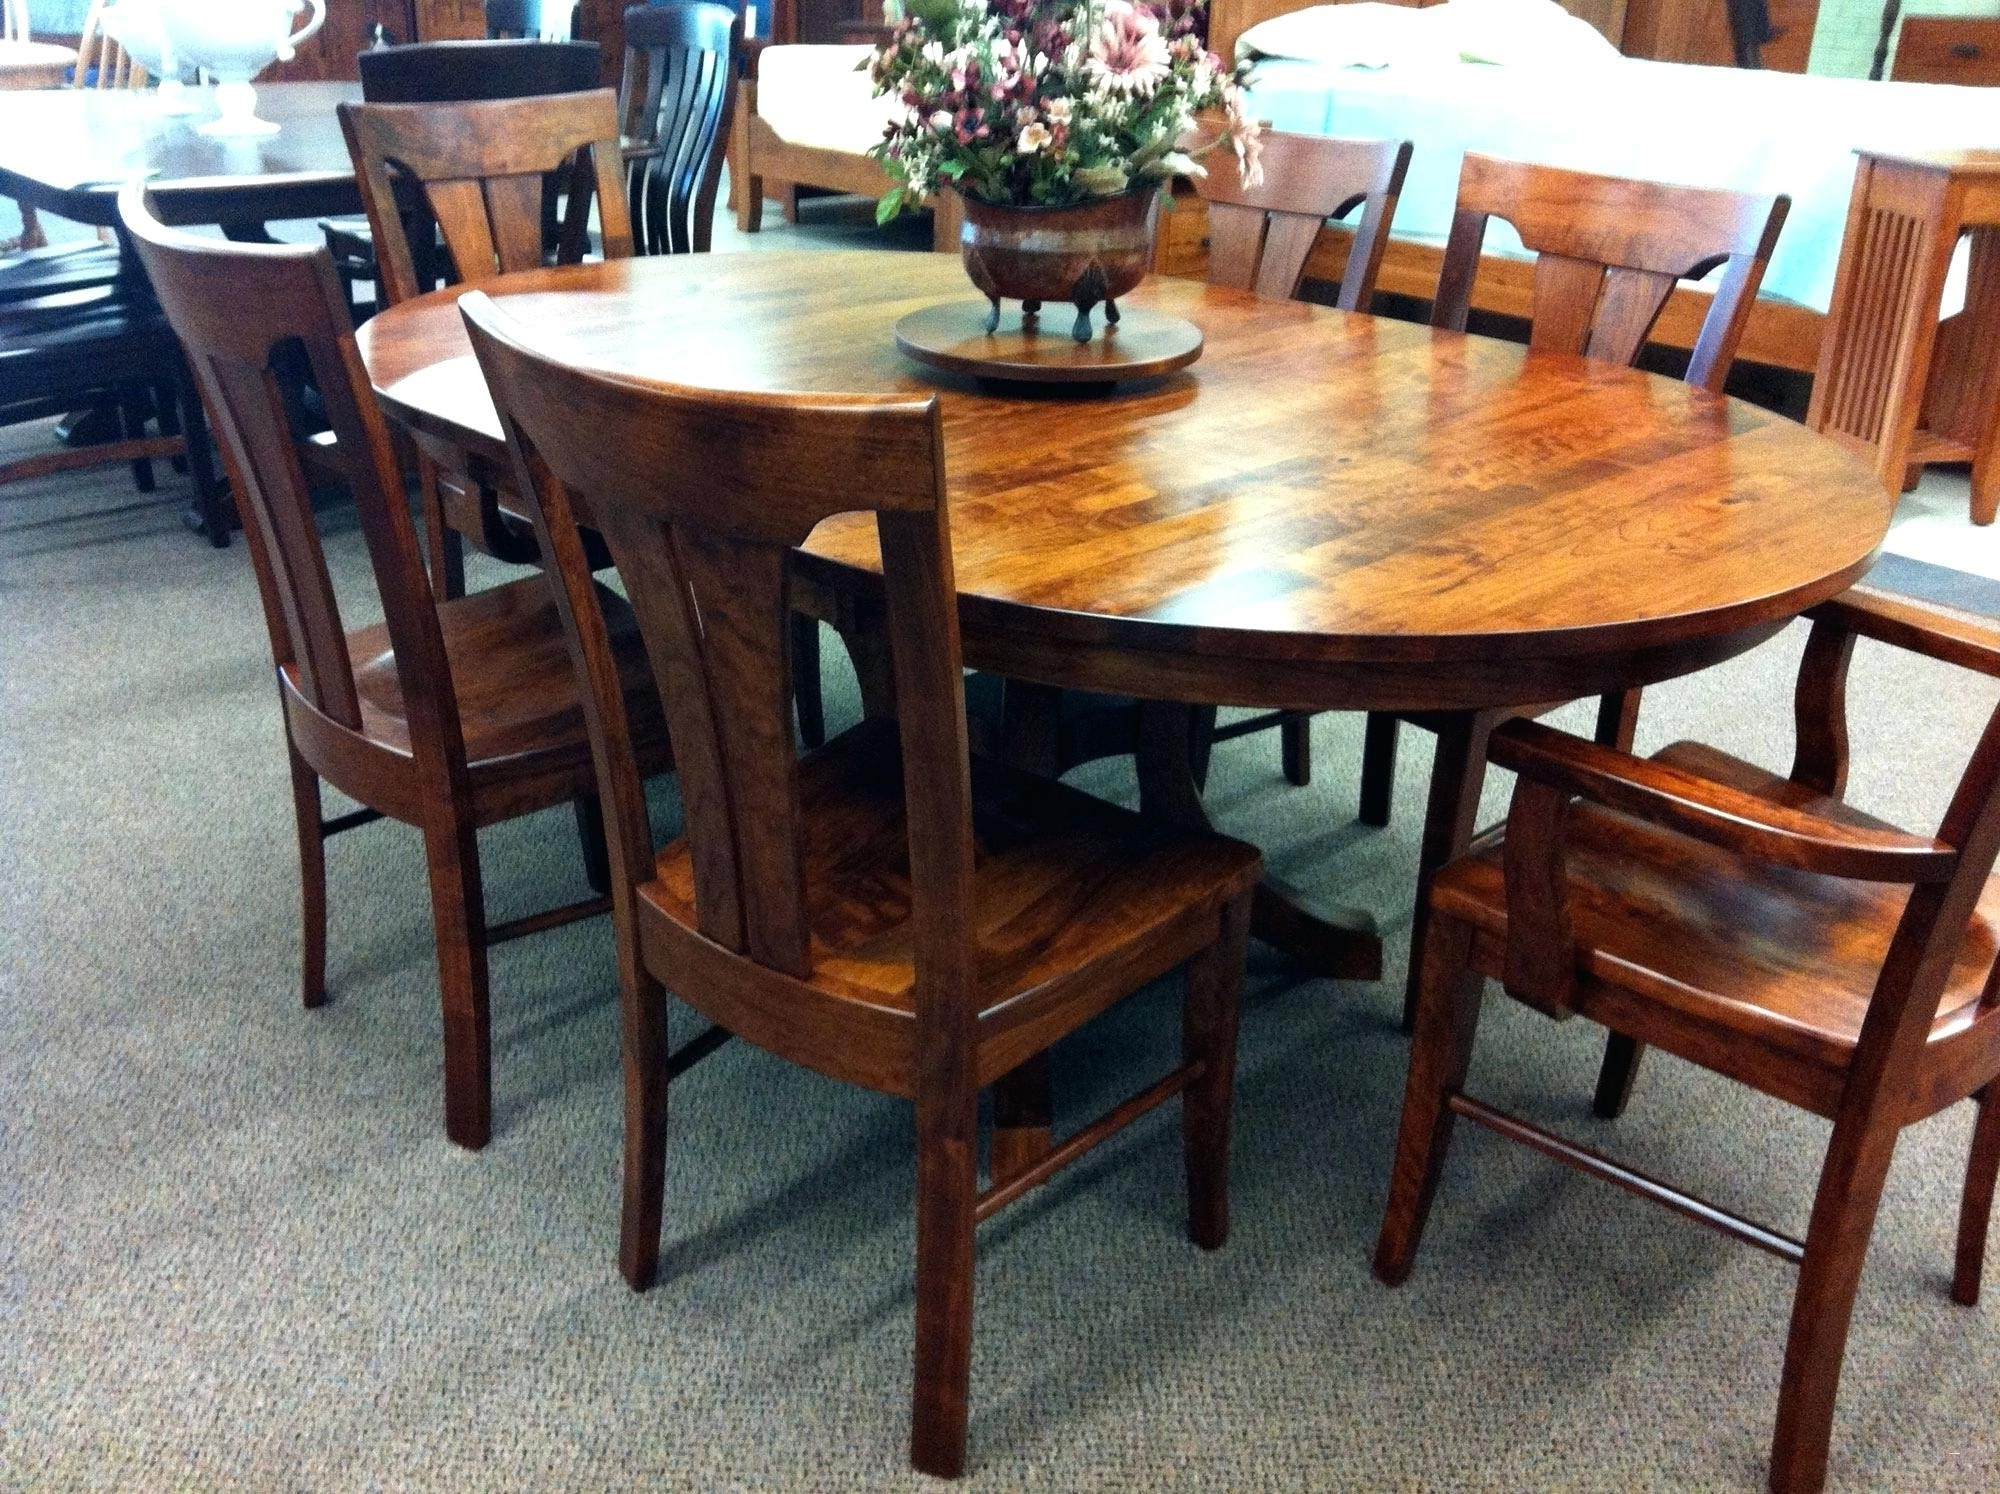 Best And Newest Round Oak Dining Tables And Chairs With Regard To The 24 Elegant Solid Oak Round Dining Table 6 Chairs (View 24 of 25)